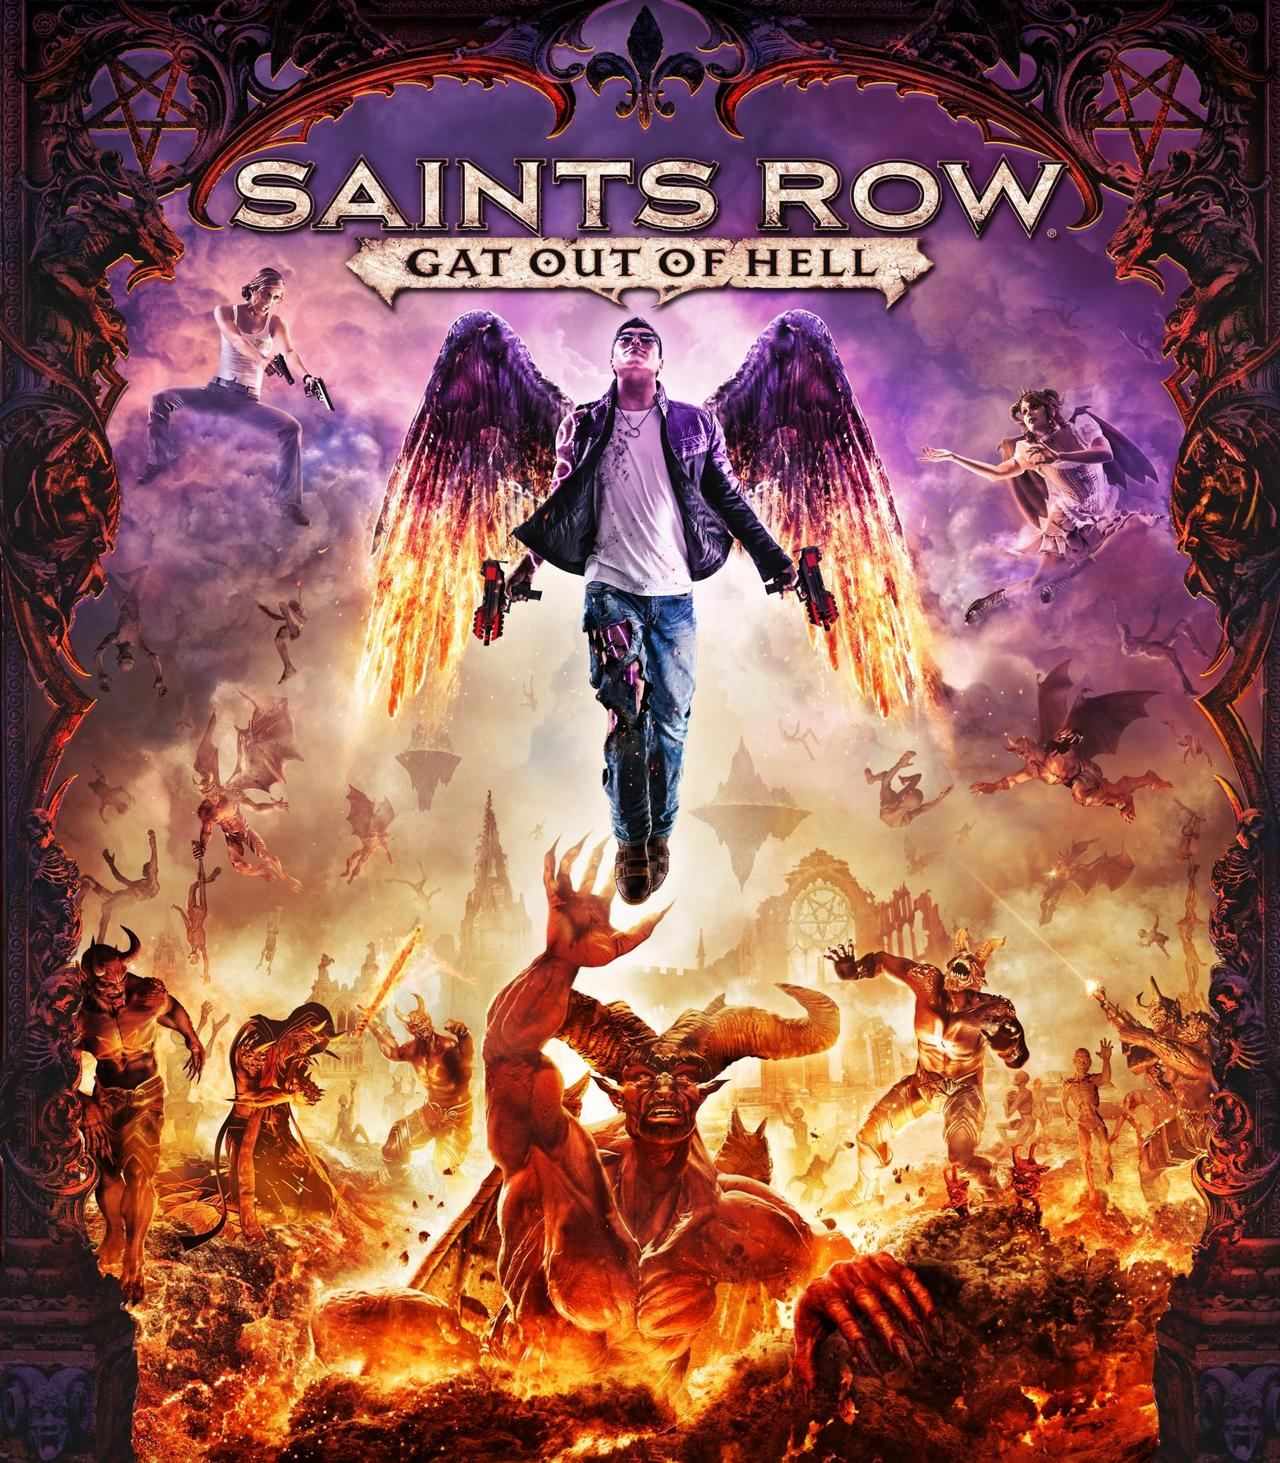 saints-row-gat-out-of-hell-pc-1409400042-004.jpg